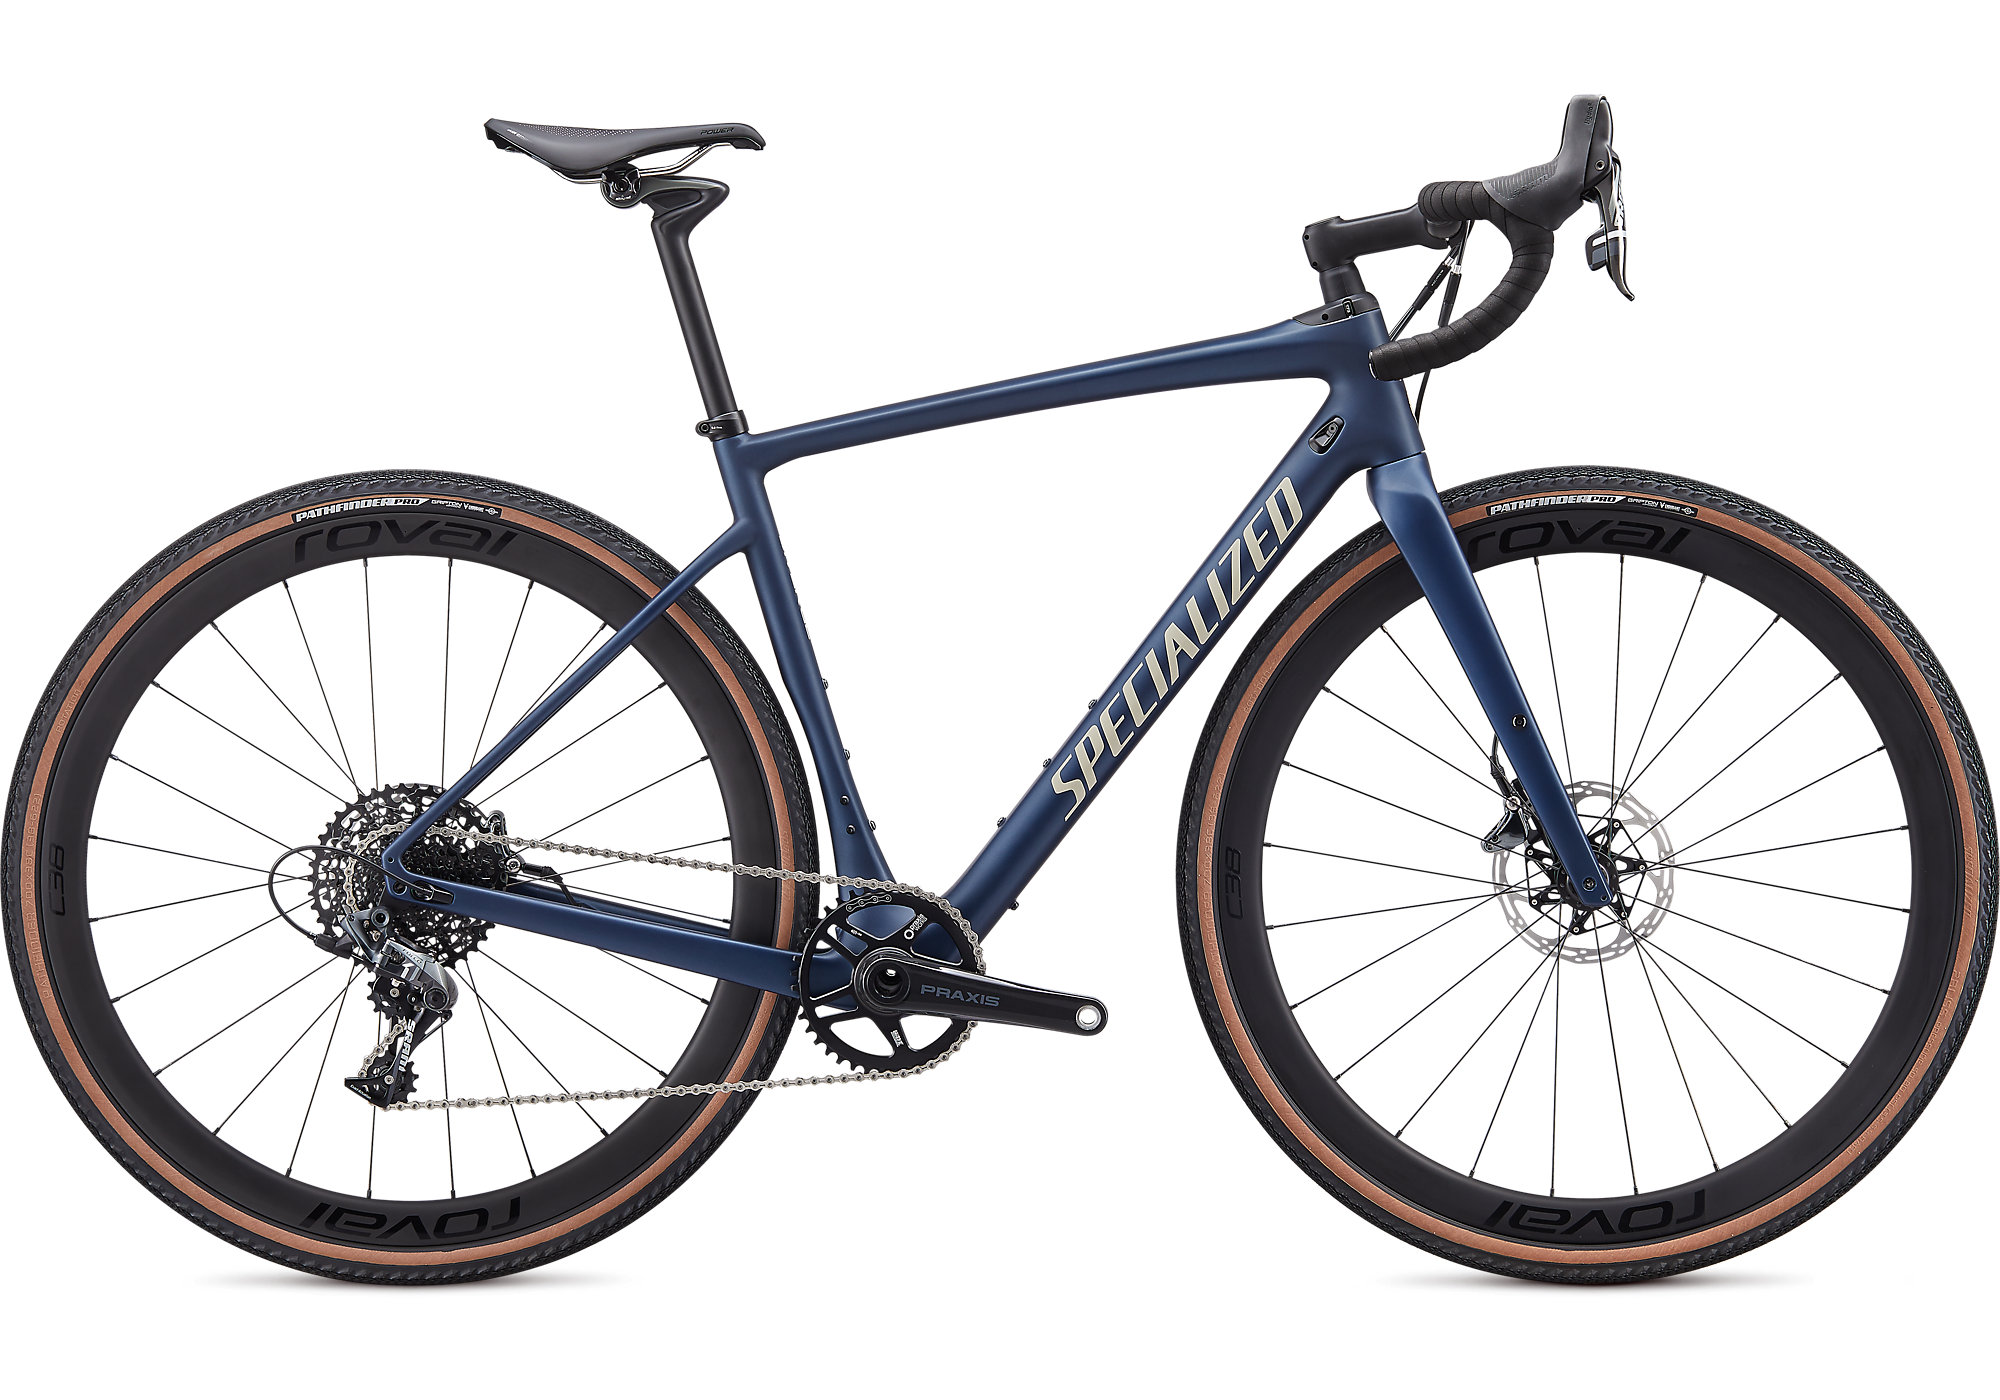 2020 Specialized Diverge Expert Carbon Gravel Bike in Blue | Cross